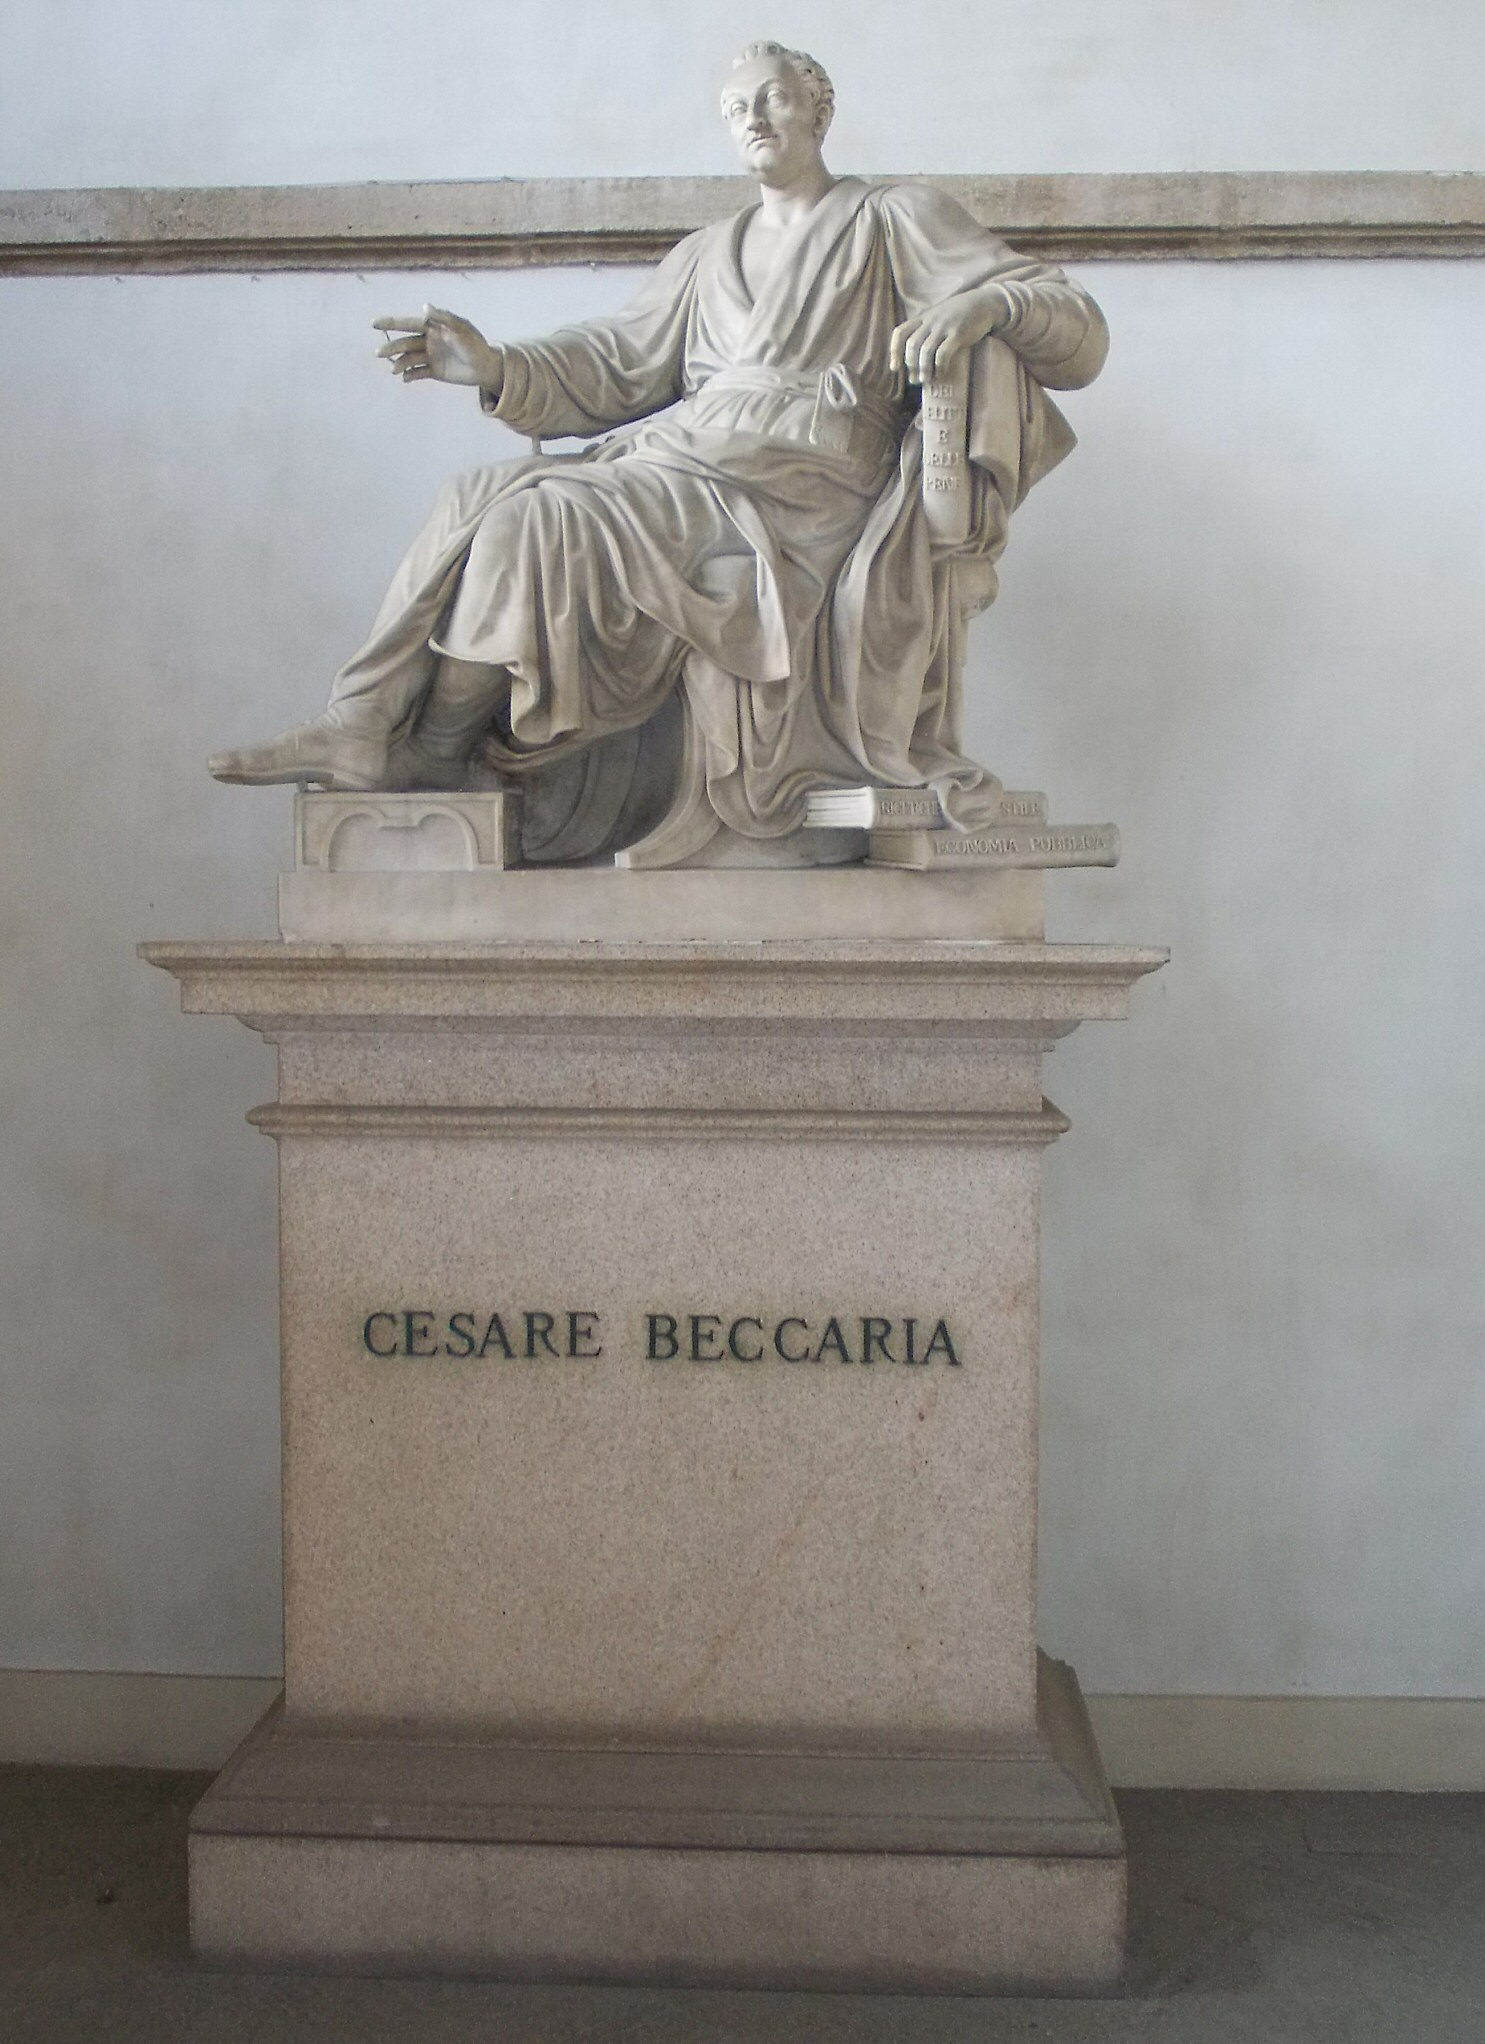 Cesare Beccaria: Biography & Crime and Punishment